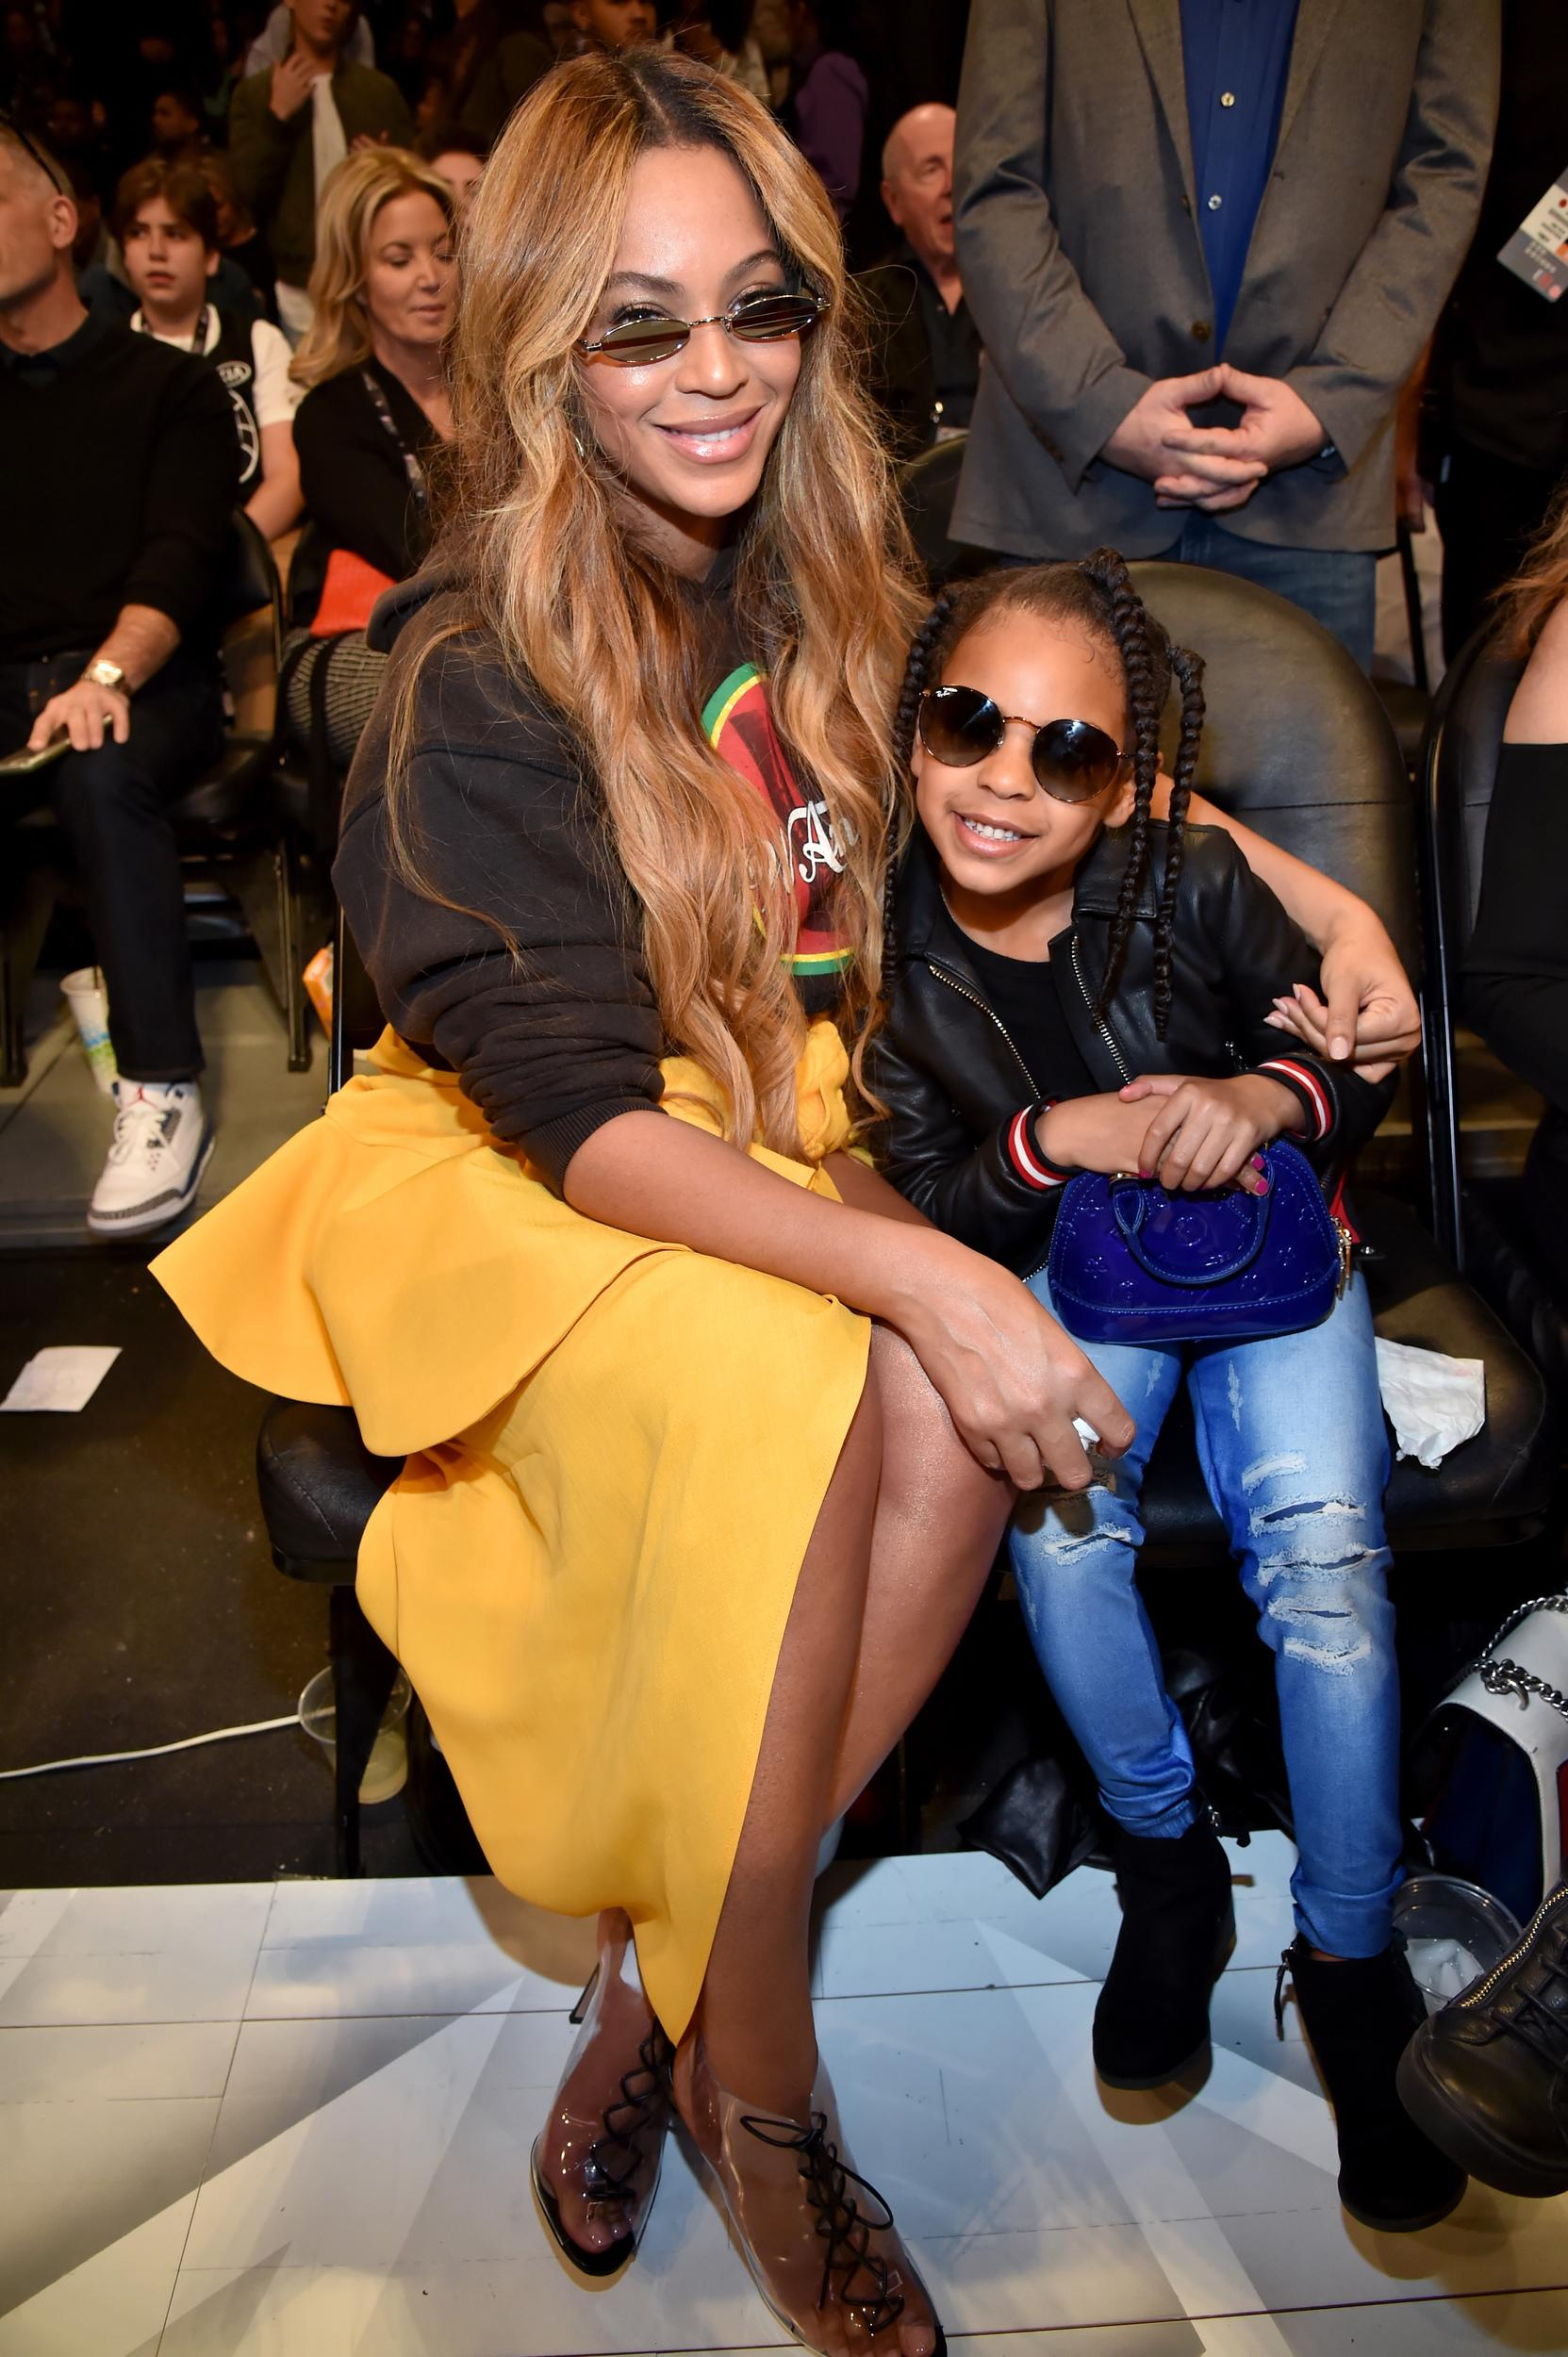 LOS ANGELES, CA - FEBRUARY 18:  Beyonce (L) and Blue Ivy Carter attend the 67th NBA All-Star Game: Team LeBron Vs. Team Stephen at Staples Center on February 18, 2018 in Los Angeles, California.  (Photo by Kevin Mazur/WireImage)